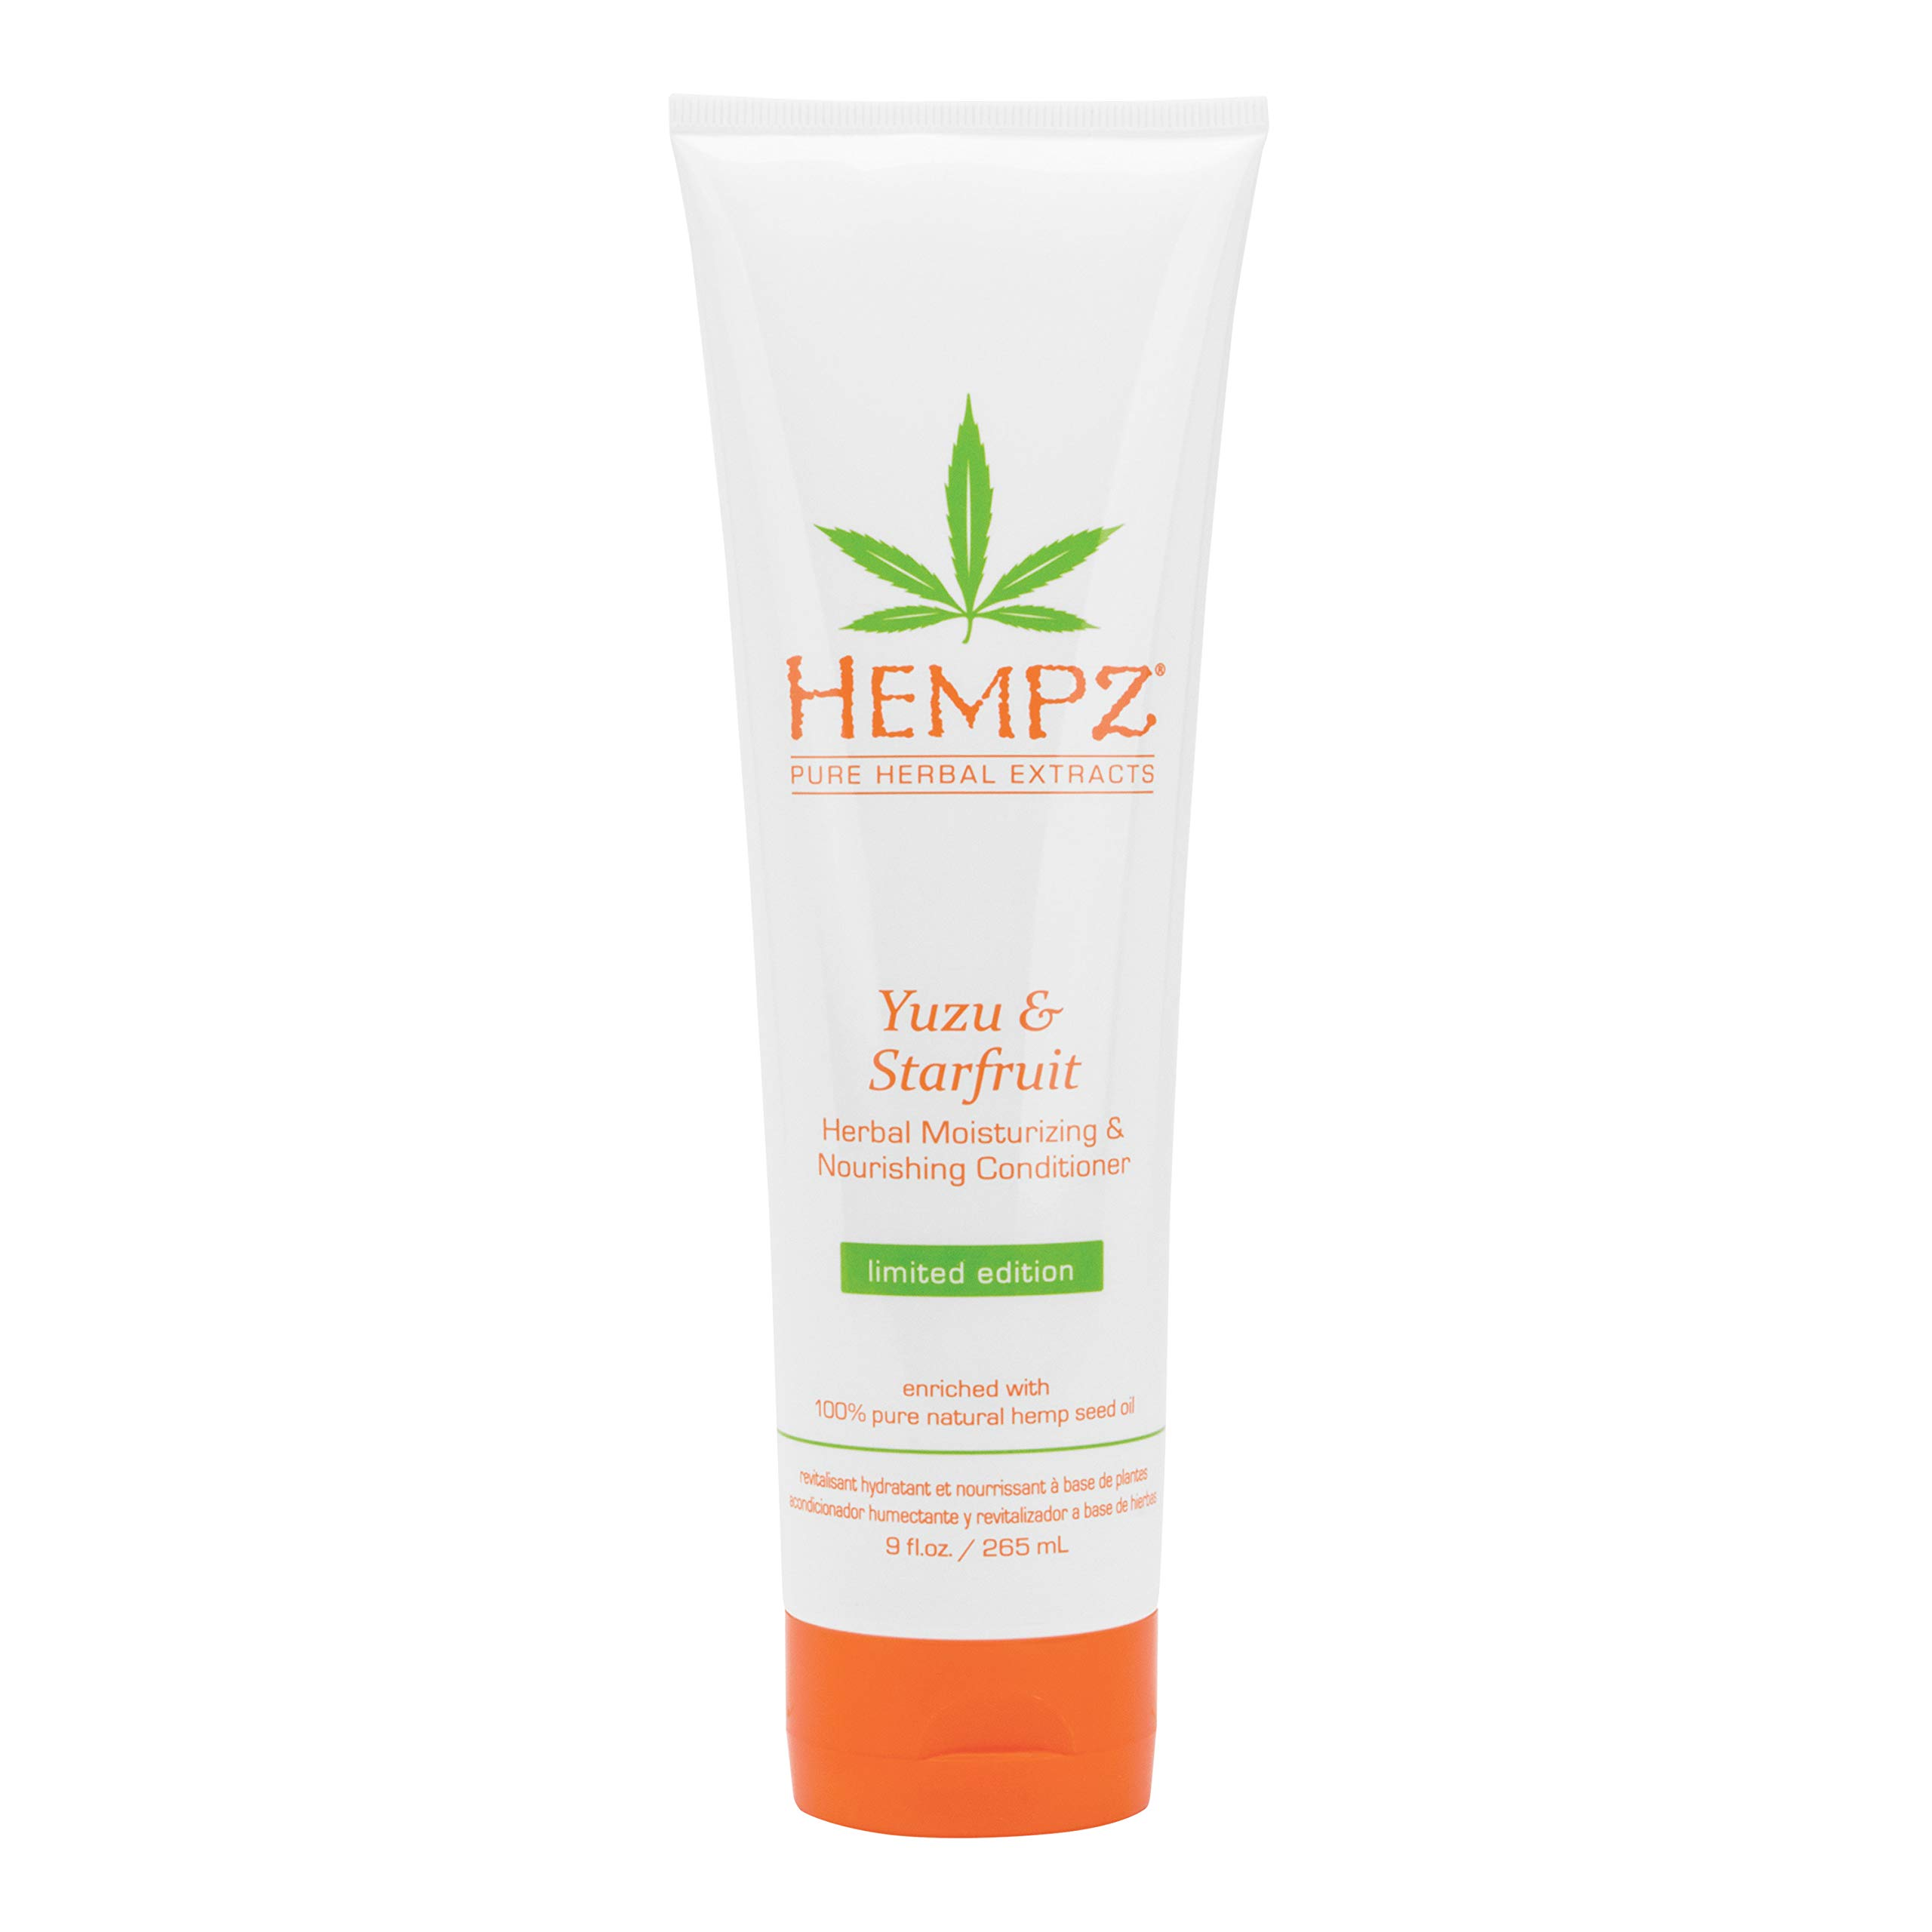 Hempz Yuzu and Starfruit Conditioner with Shea Butter and Essential Extracts, for Women and Men, 9 oz. - Natural, Moisturizing Conditioner for Dry, Color-Treated Hair - Professional Hair Care Products by Hempz